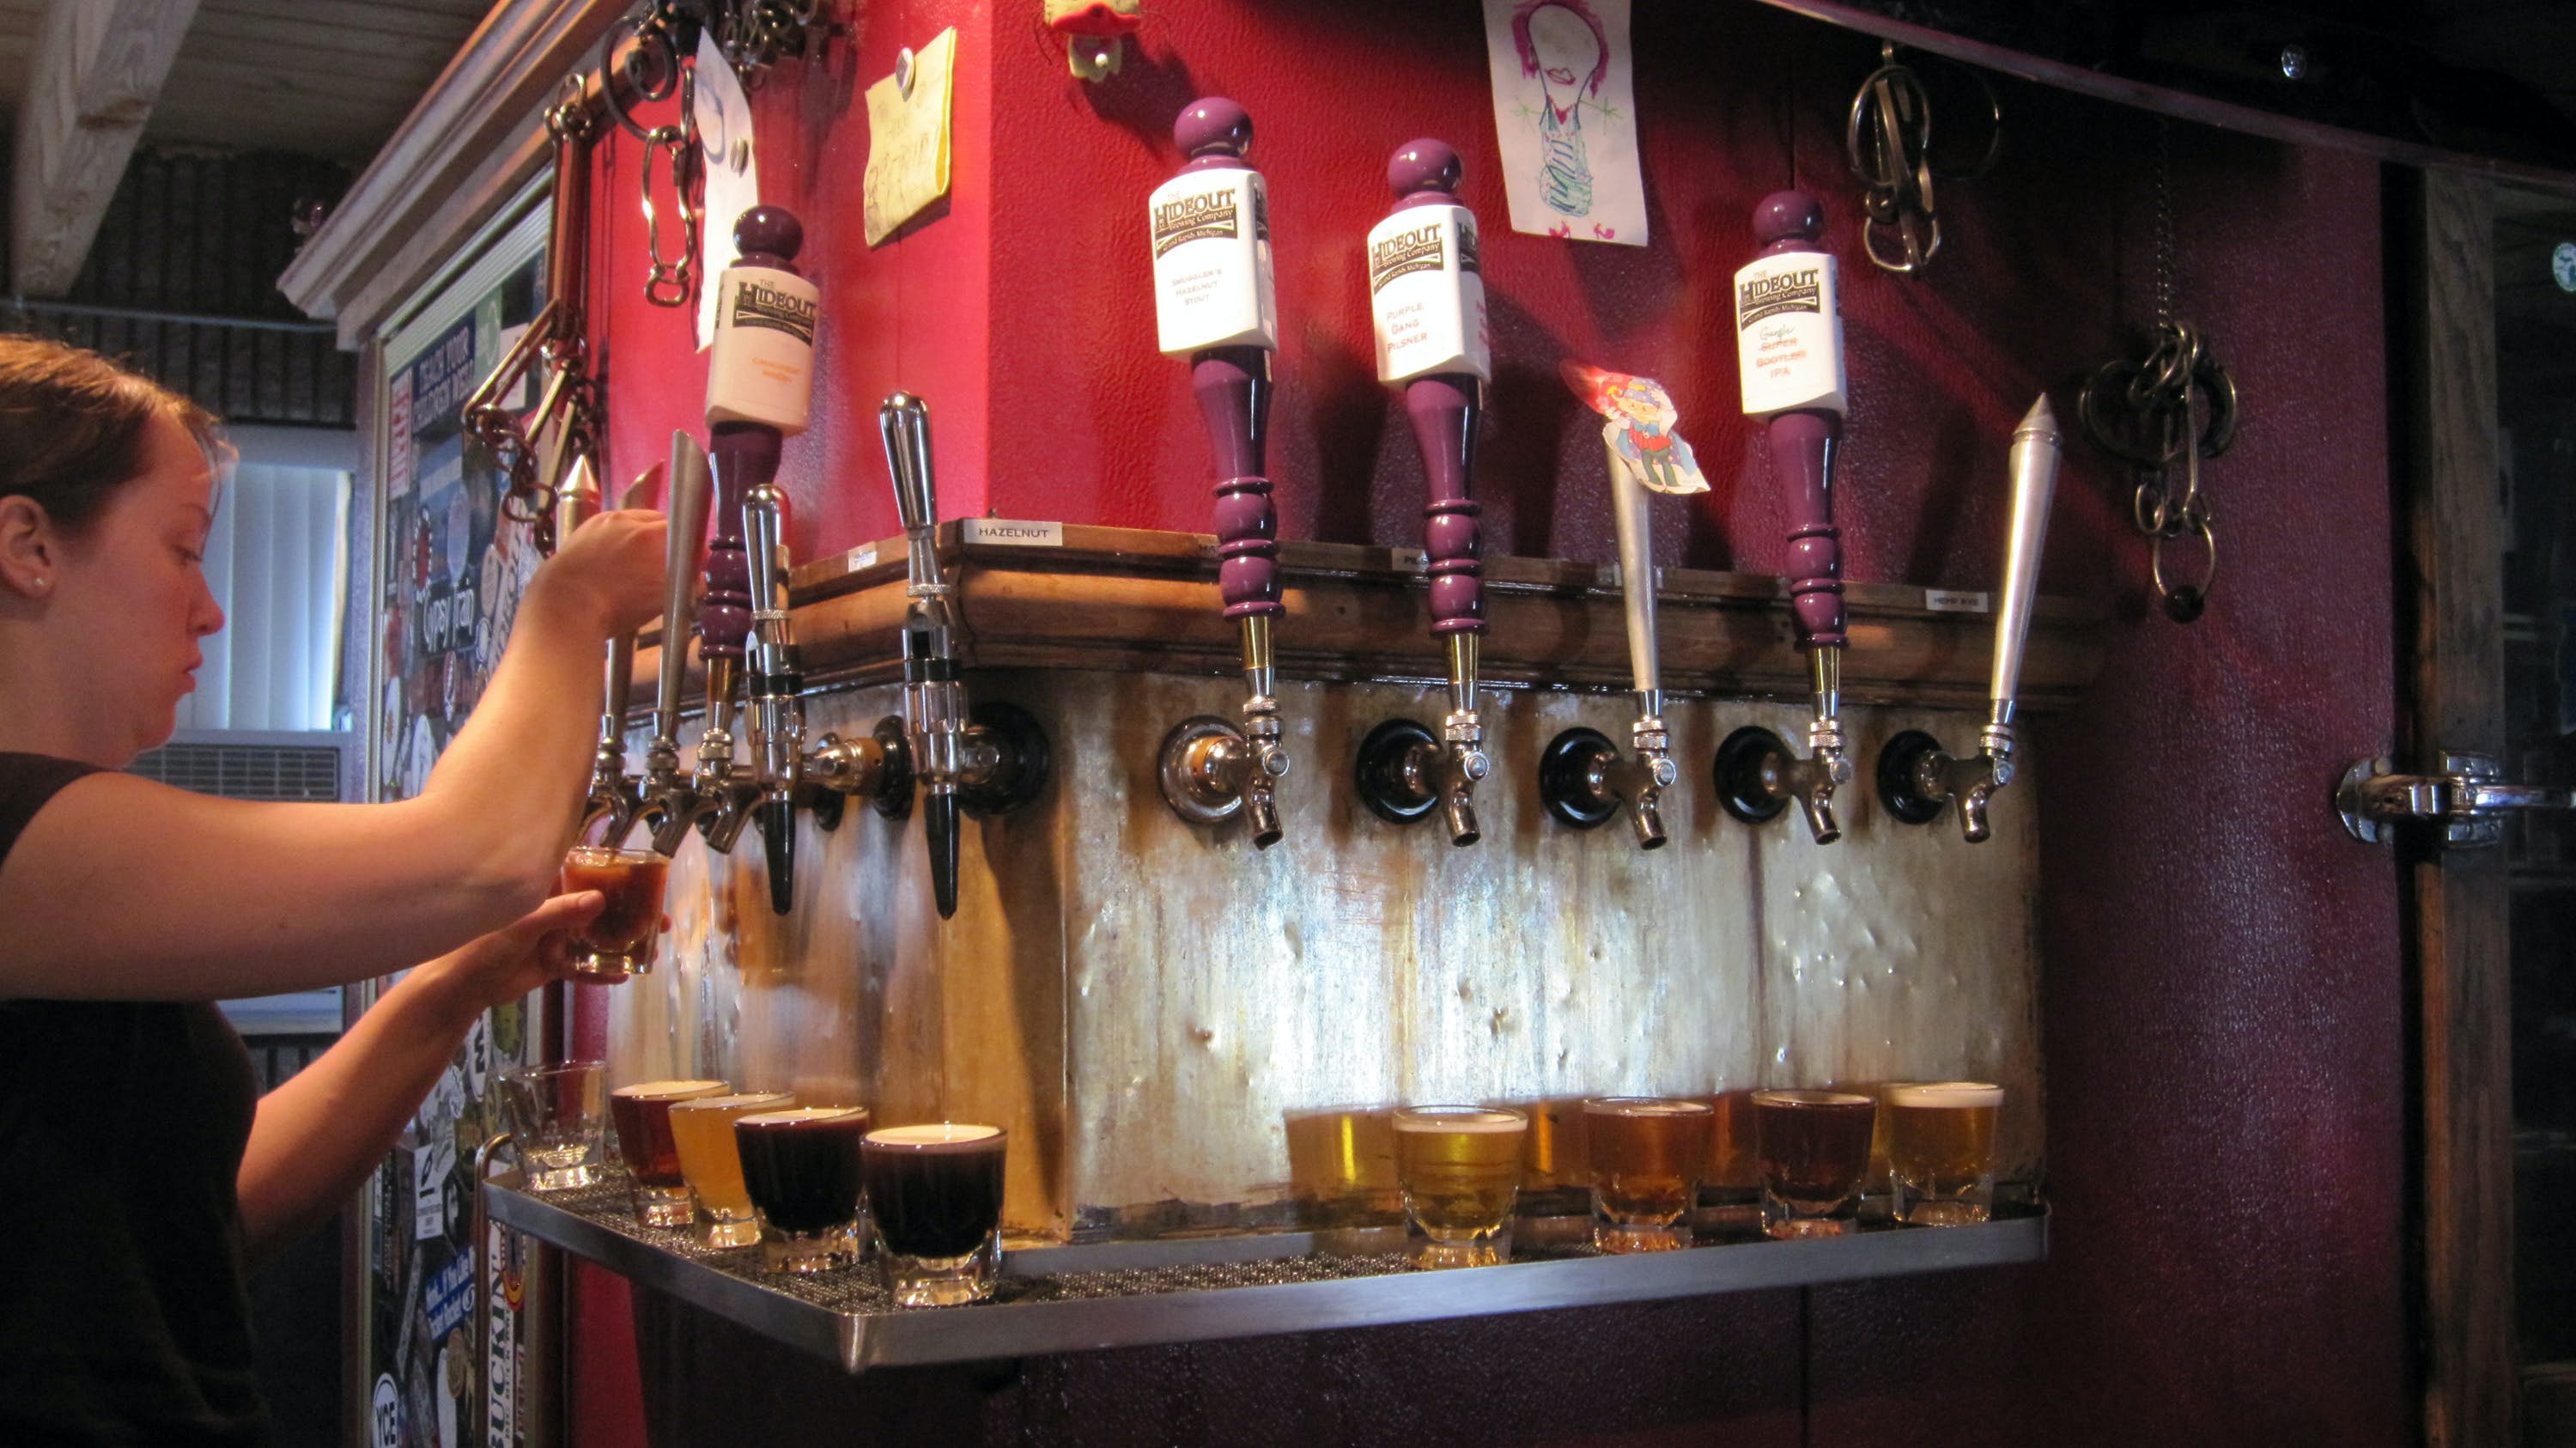 #9 - Grand Rapids, Michigan. Breweries such as The Hideout helped former President Gerald Ford's hometown win a recent Best Beer Scene award, boosting its hipster cred. Image: Chicago Tribune/MCT via Getty Images